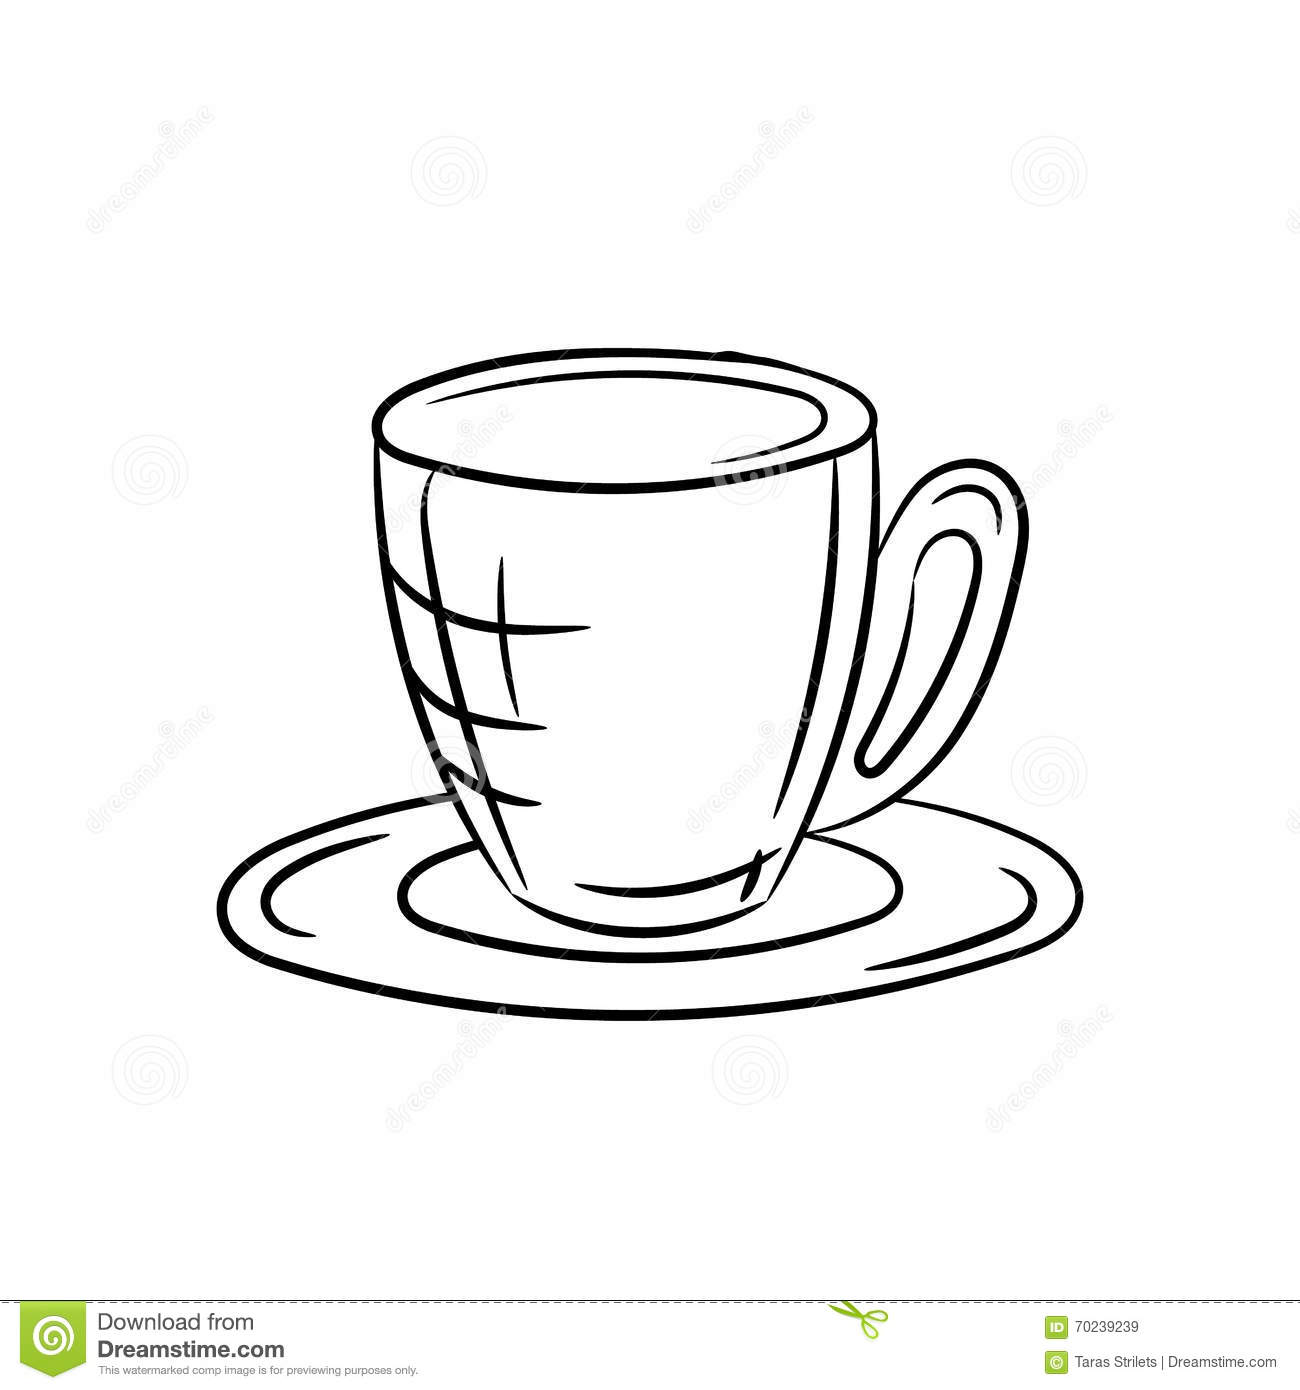 Cup And Saucer On A White Background Stock Vector Illustration Of Design Break 70239239